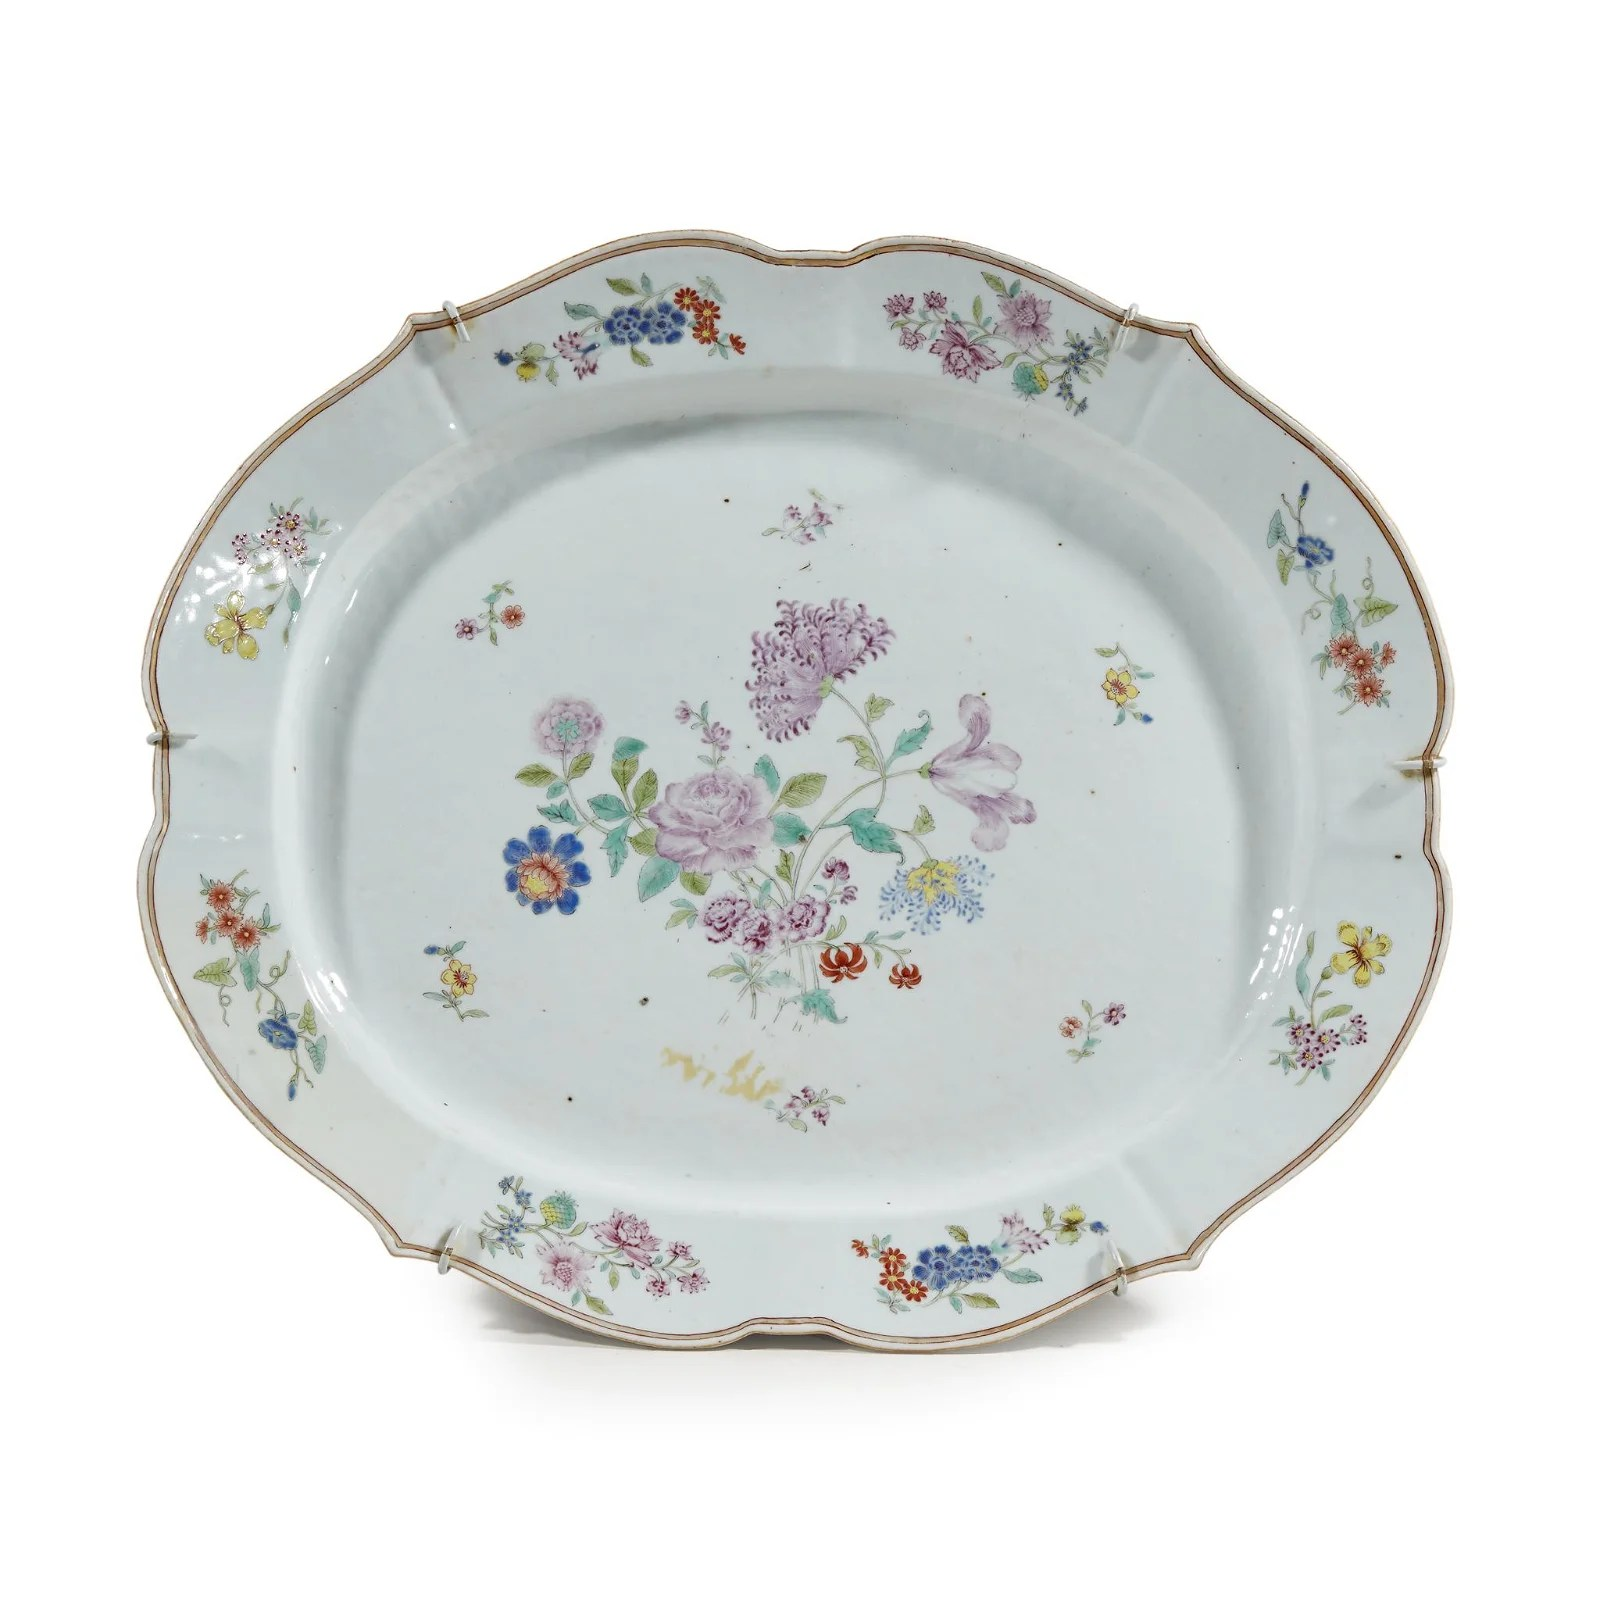 A Chinese export porcelain famille rose-decorated